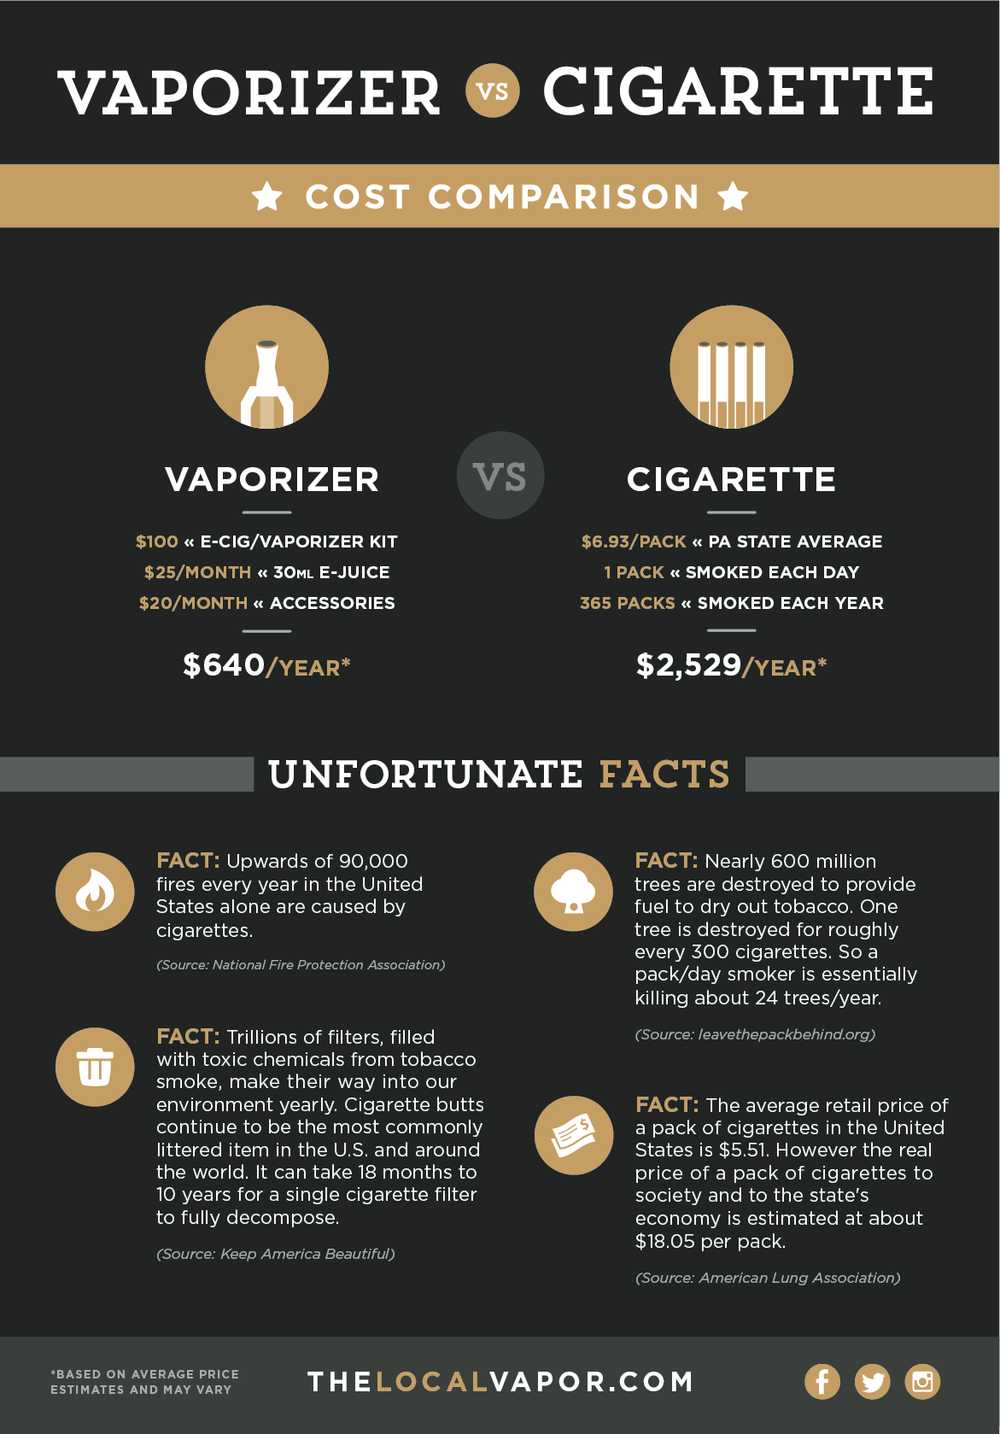 Vaporizer vs. Cigarette